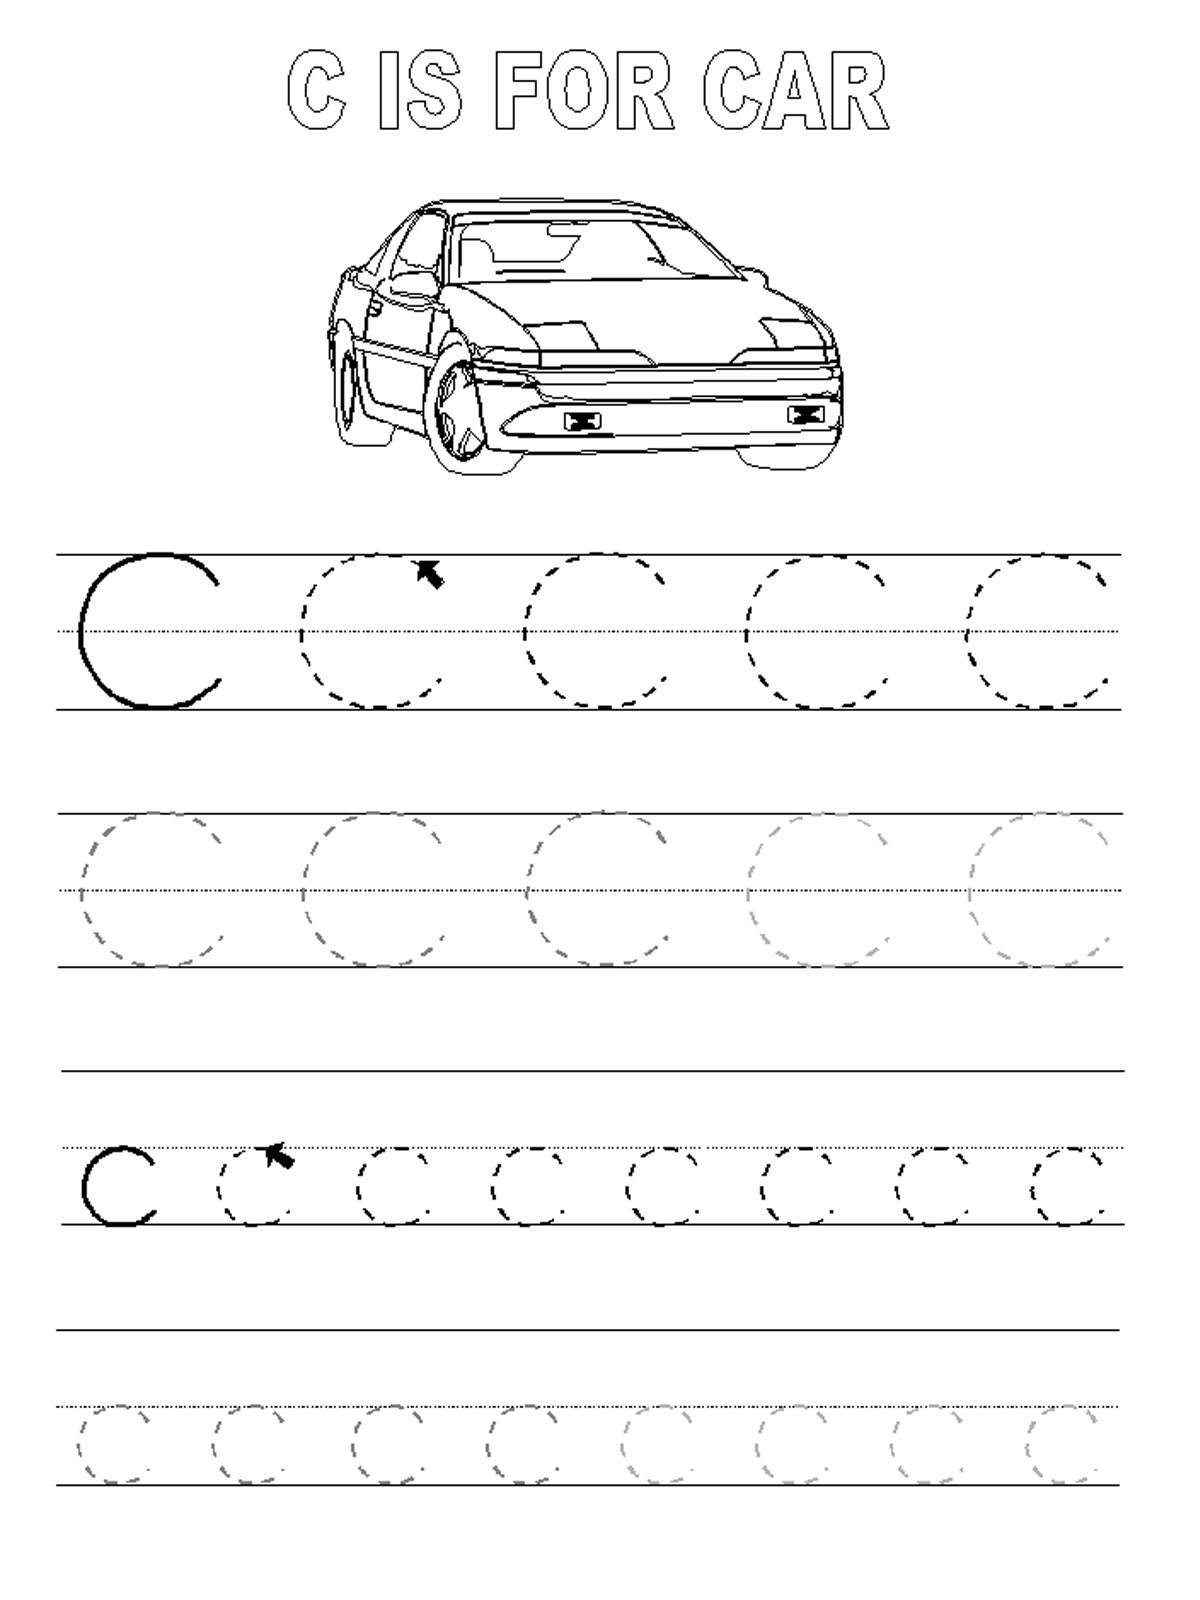 Free Worksheet Letter C Worksheets Preschool letter c worksheets rringband trace the activity shelter